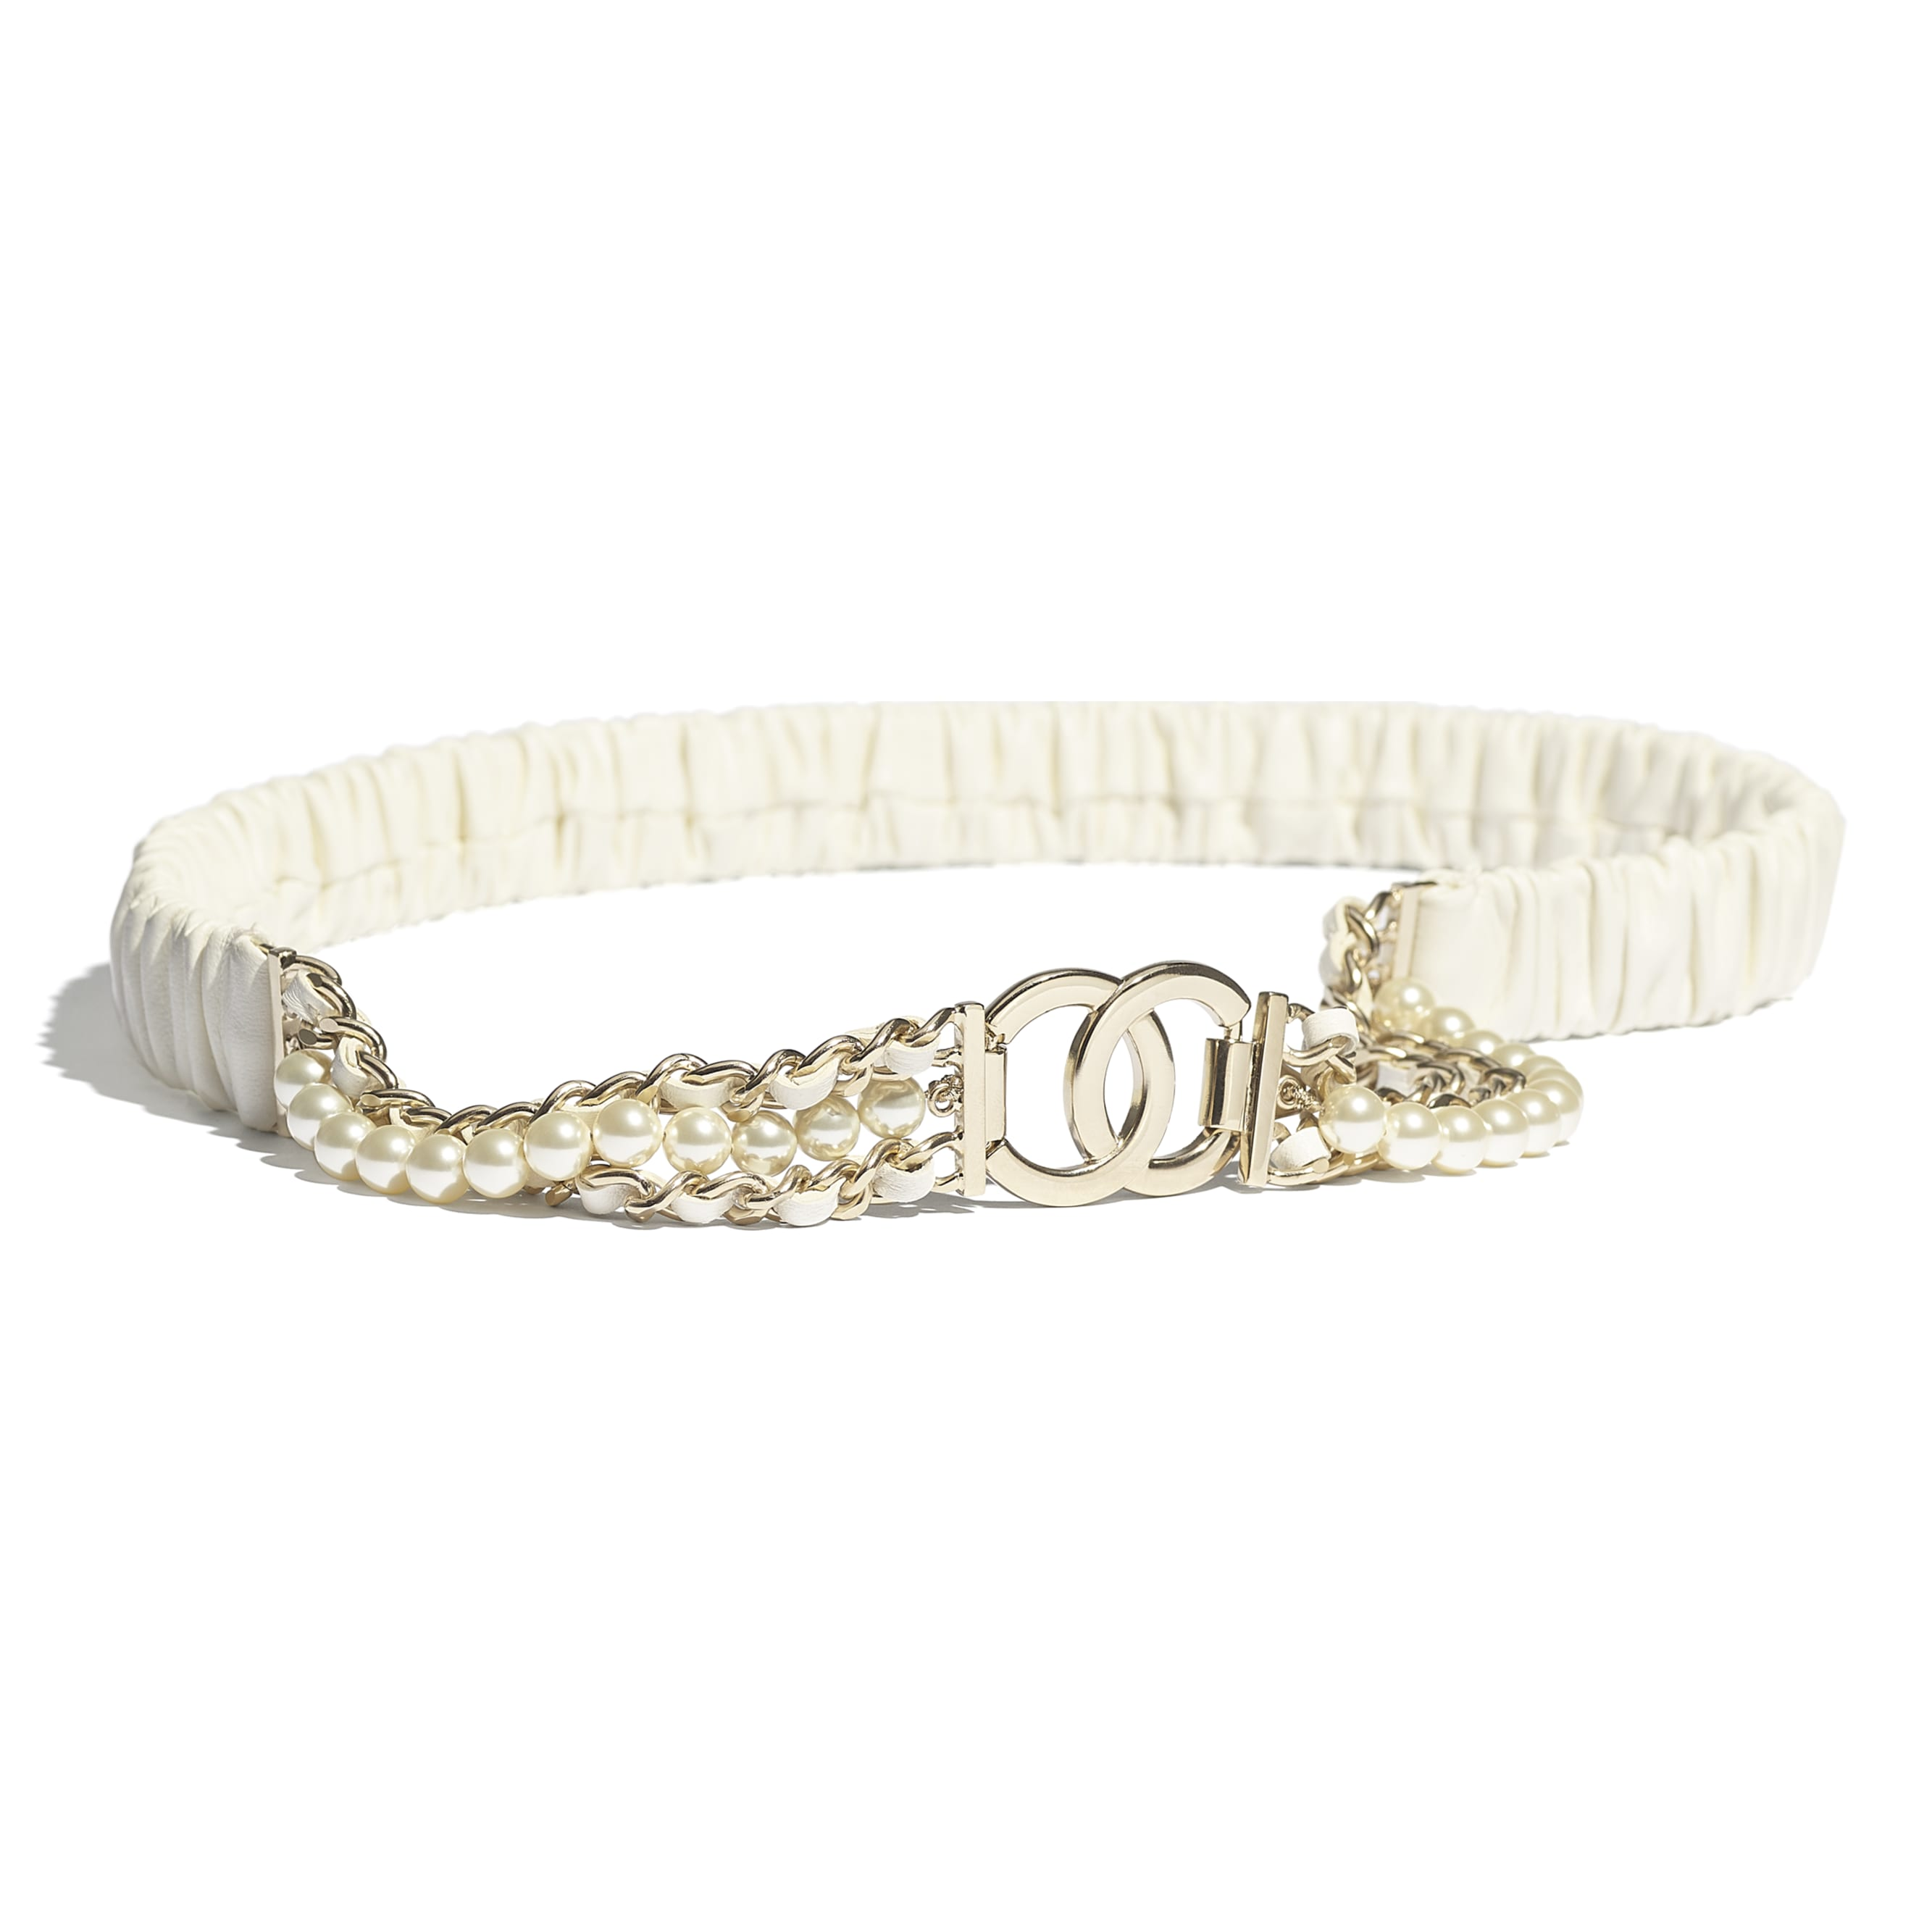 Belt - Ivory - Lambskin, Gold-Tone Metal, Glass Pearls & Strass - CHANEL - Default view - see standard sized version